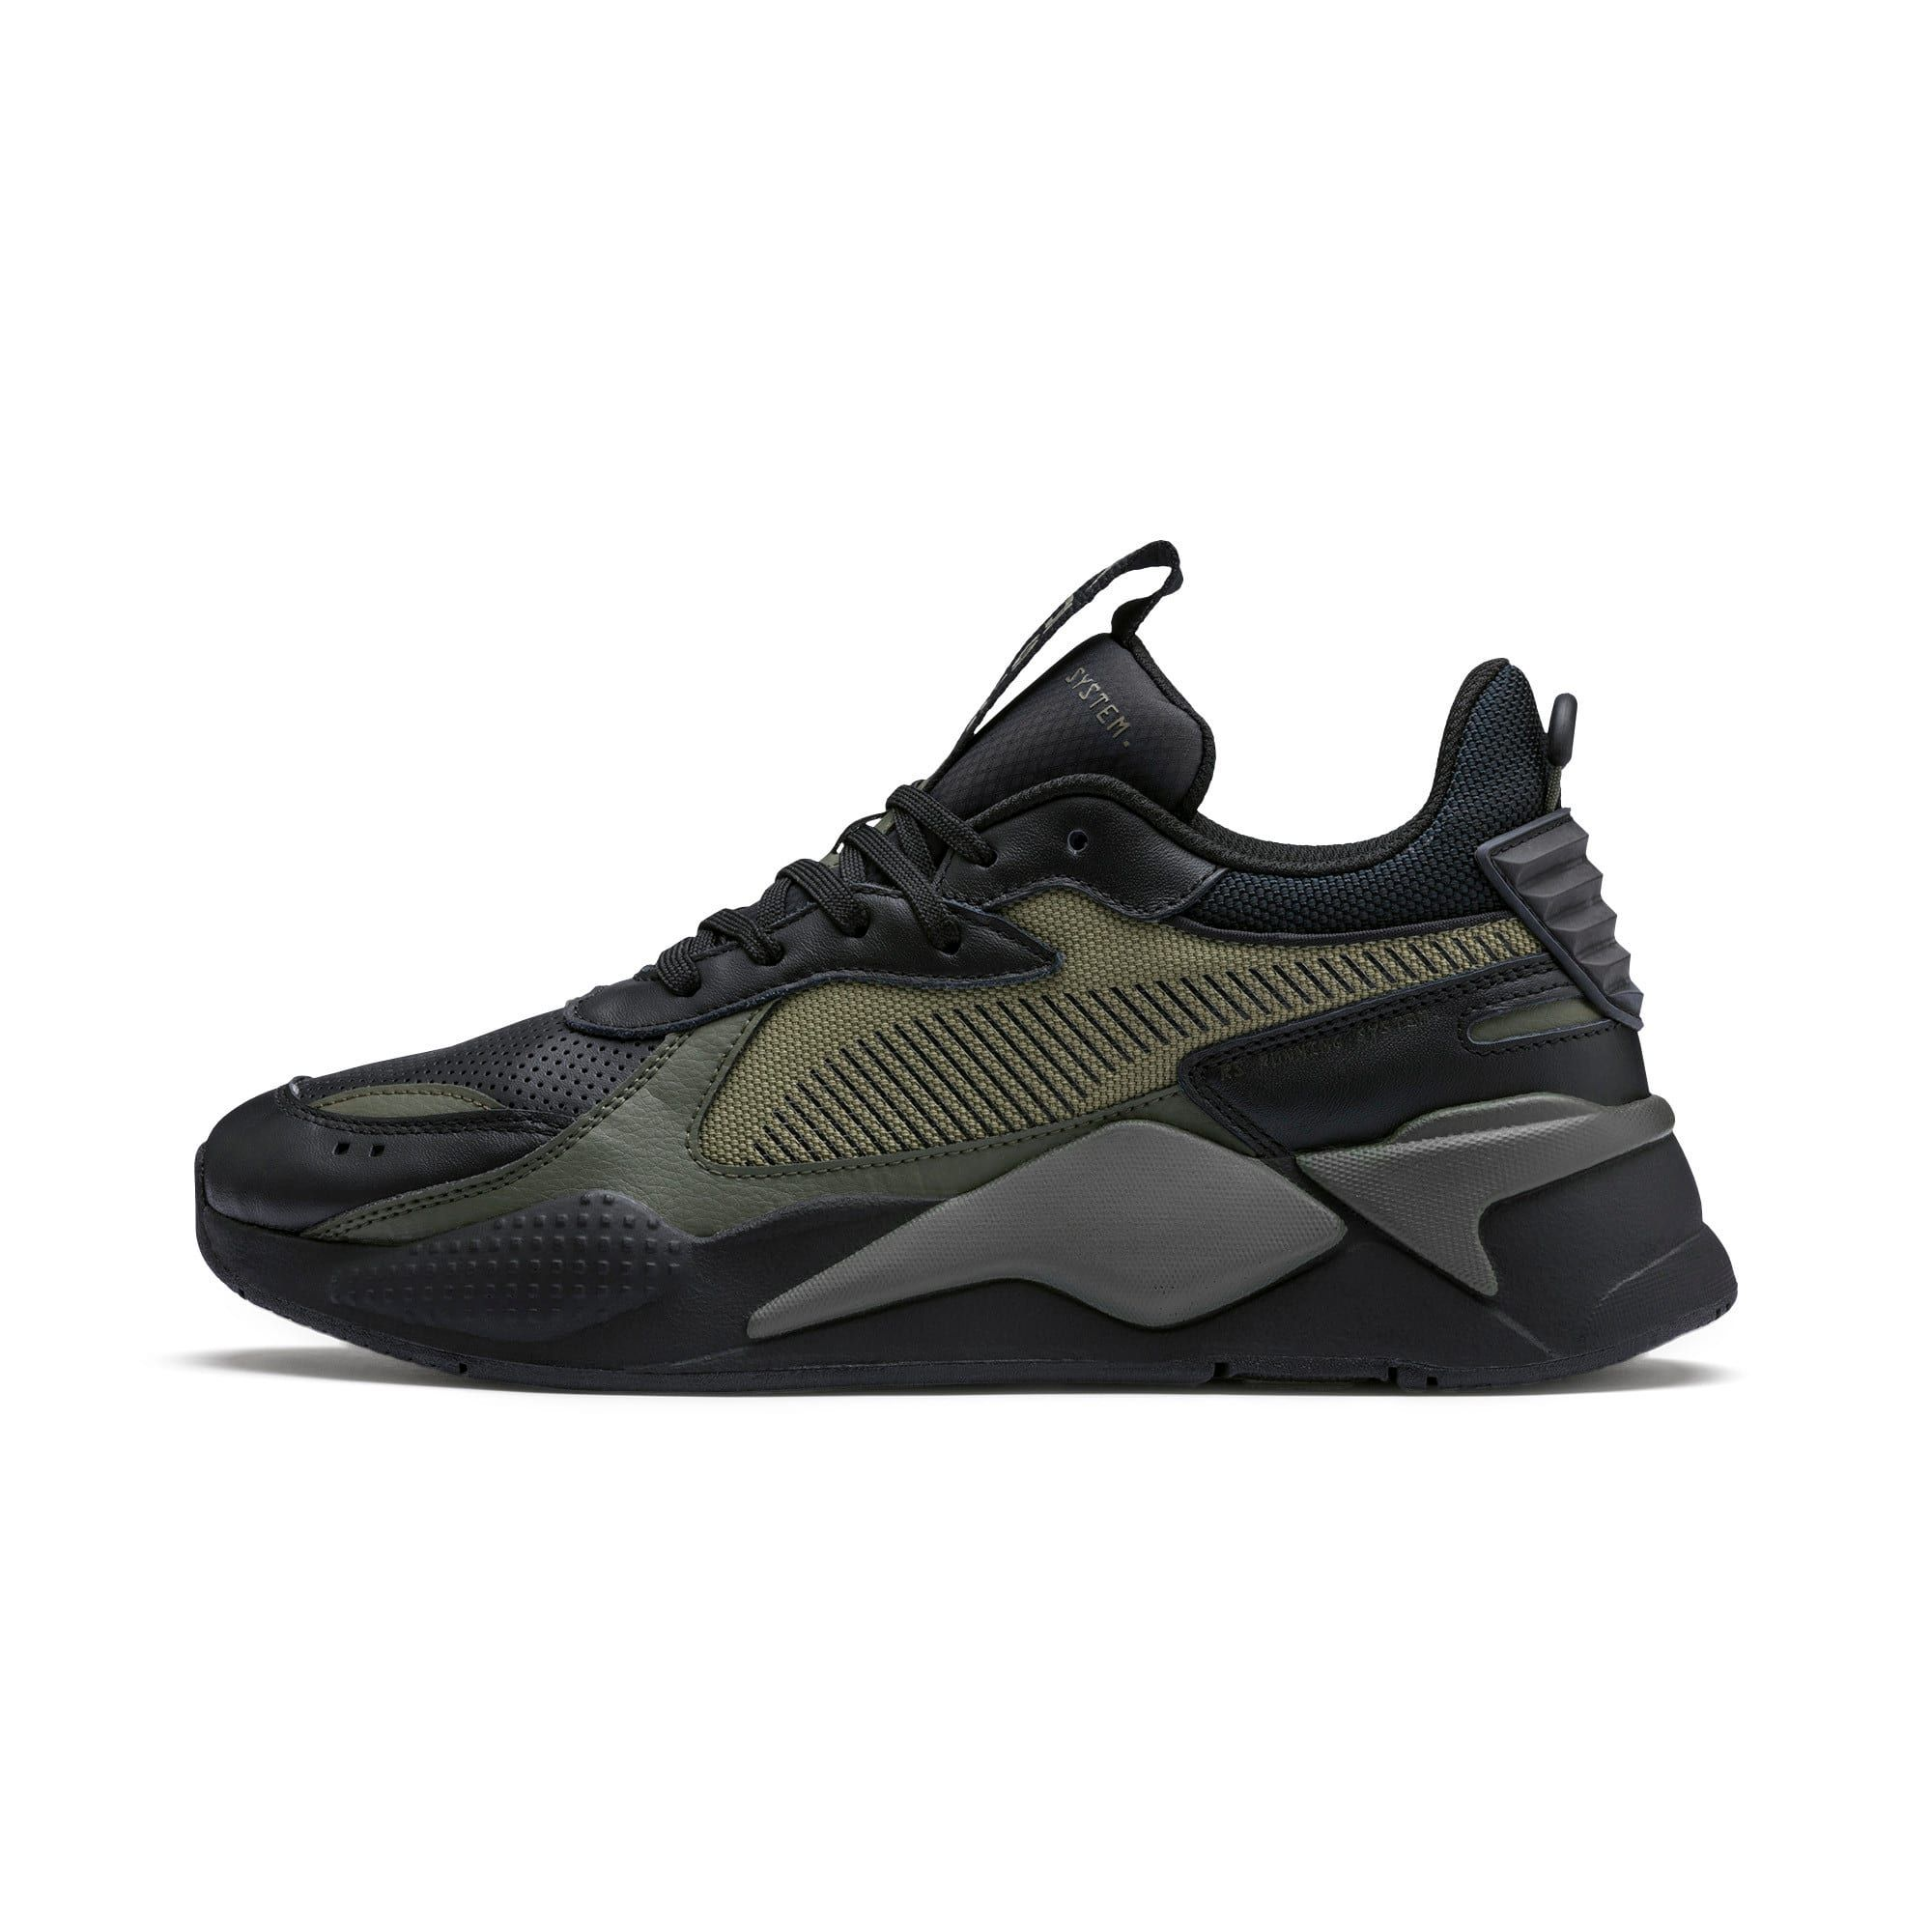 PUMA Rs-X Winterised Trainers in Black/Burnt Olive size 10.5 ...